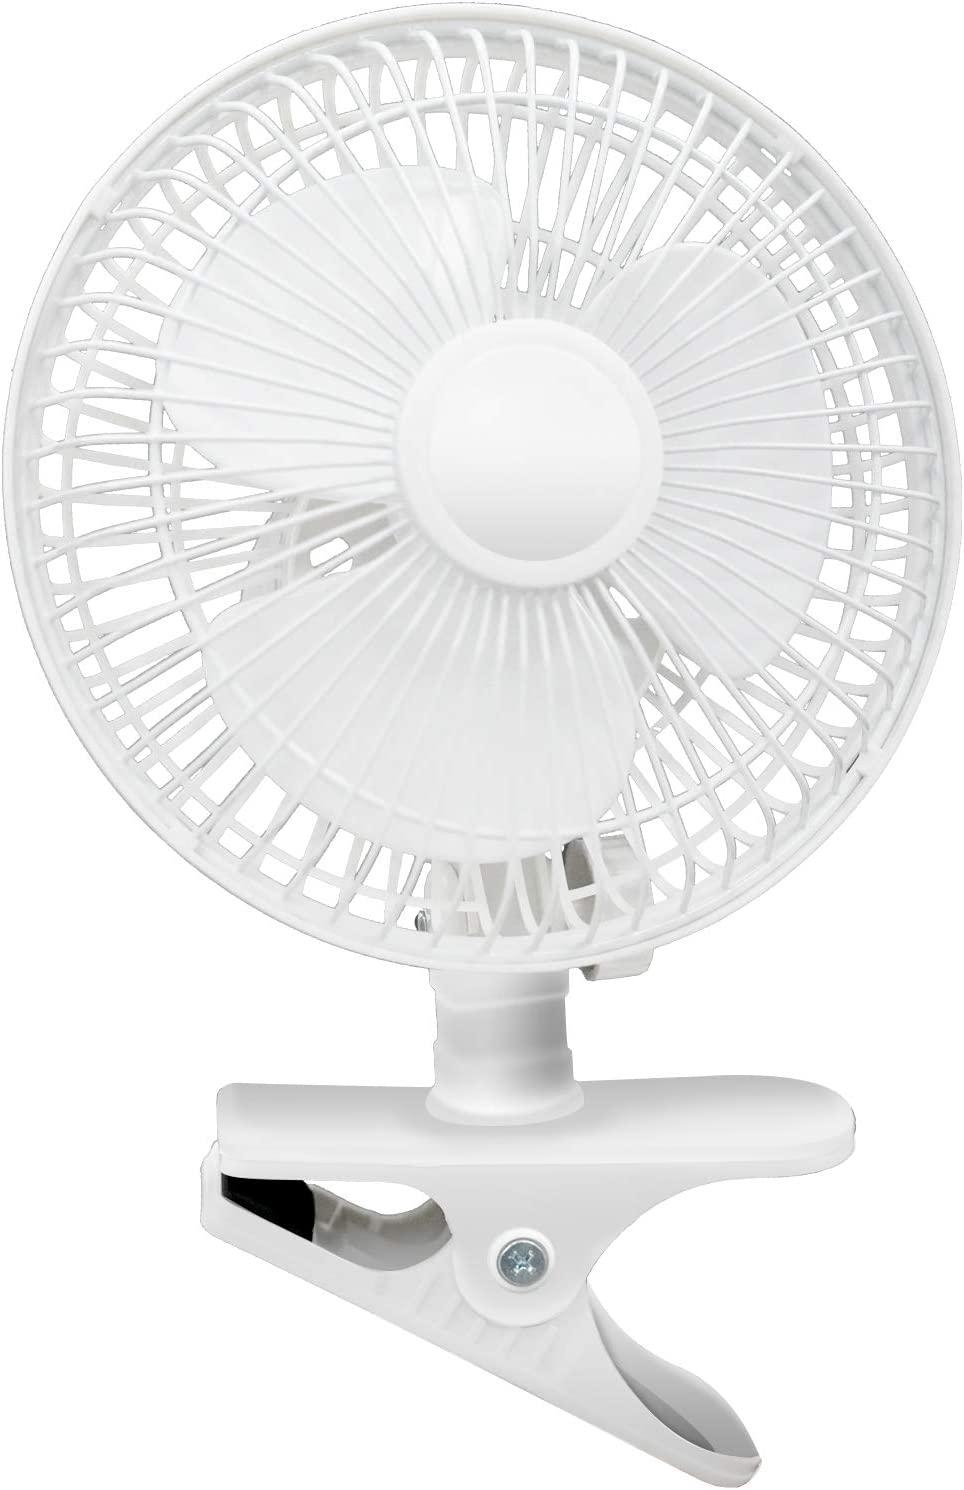 BEYOND BREEZE Clip Fan Two Quiet Speeds,Strong Grip Clamp, Adjustable Tilt,Ideal for Home,Office,Dorm,6 Inch,White